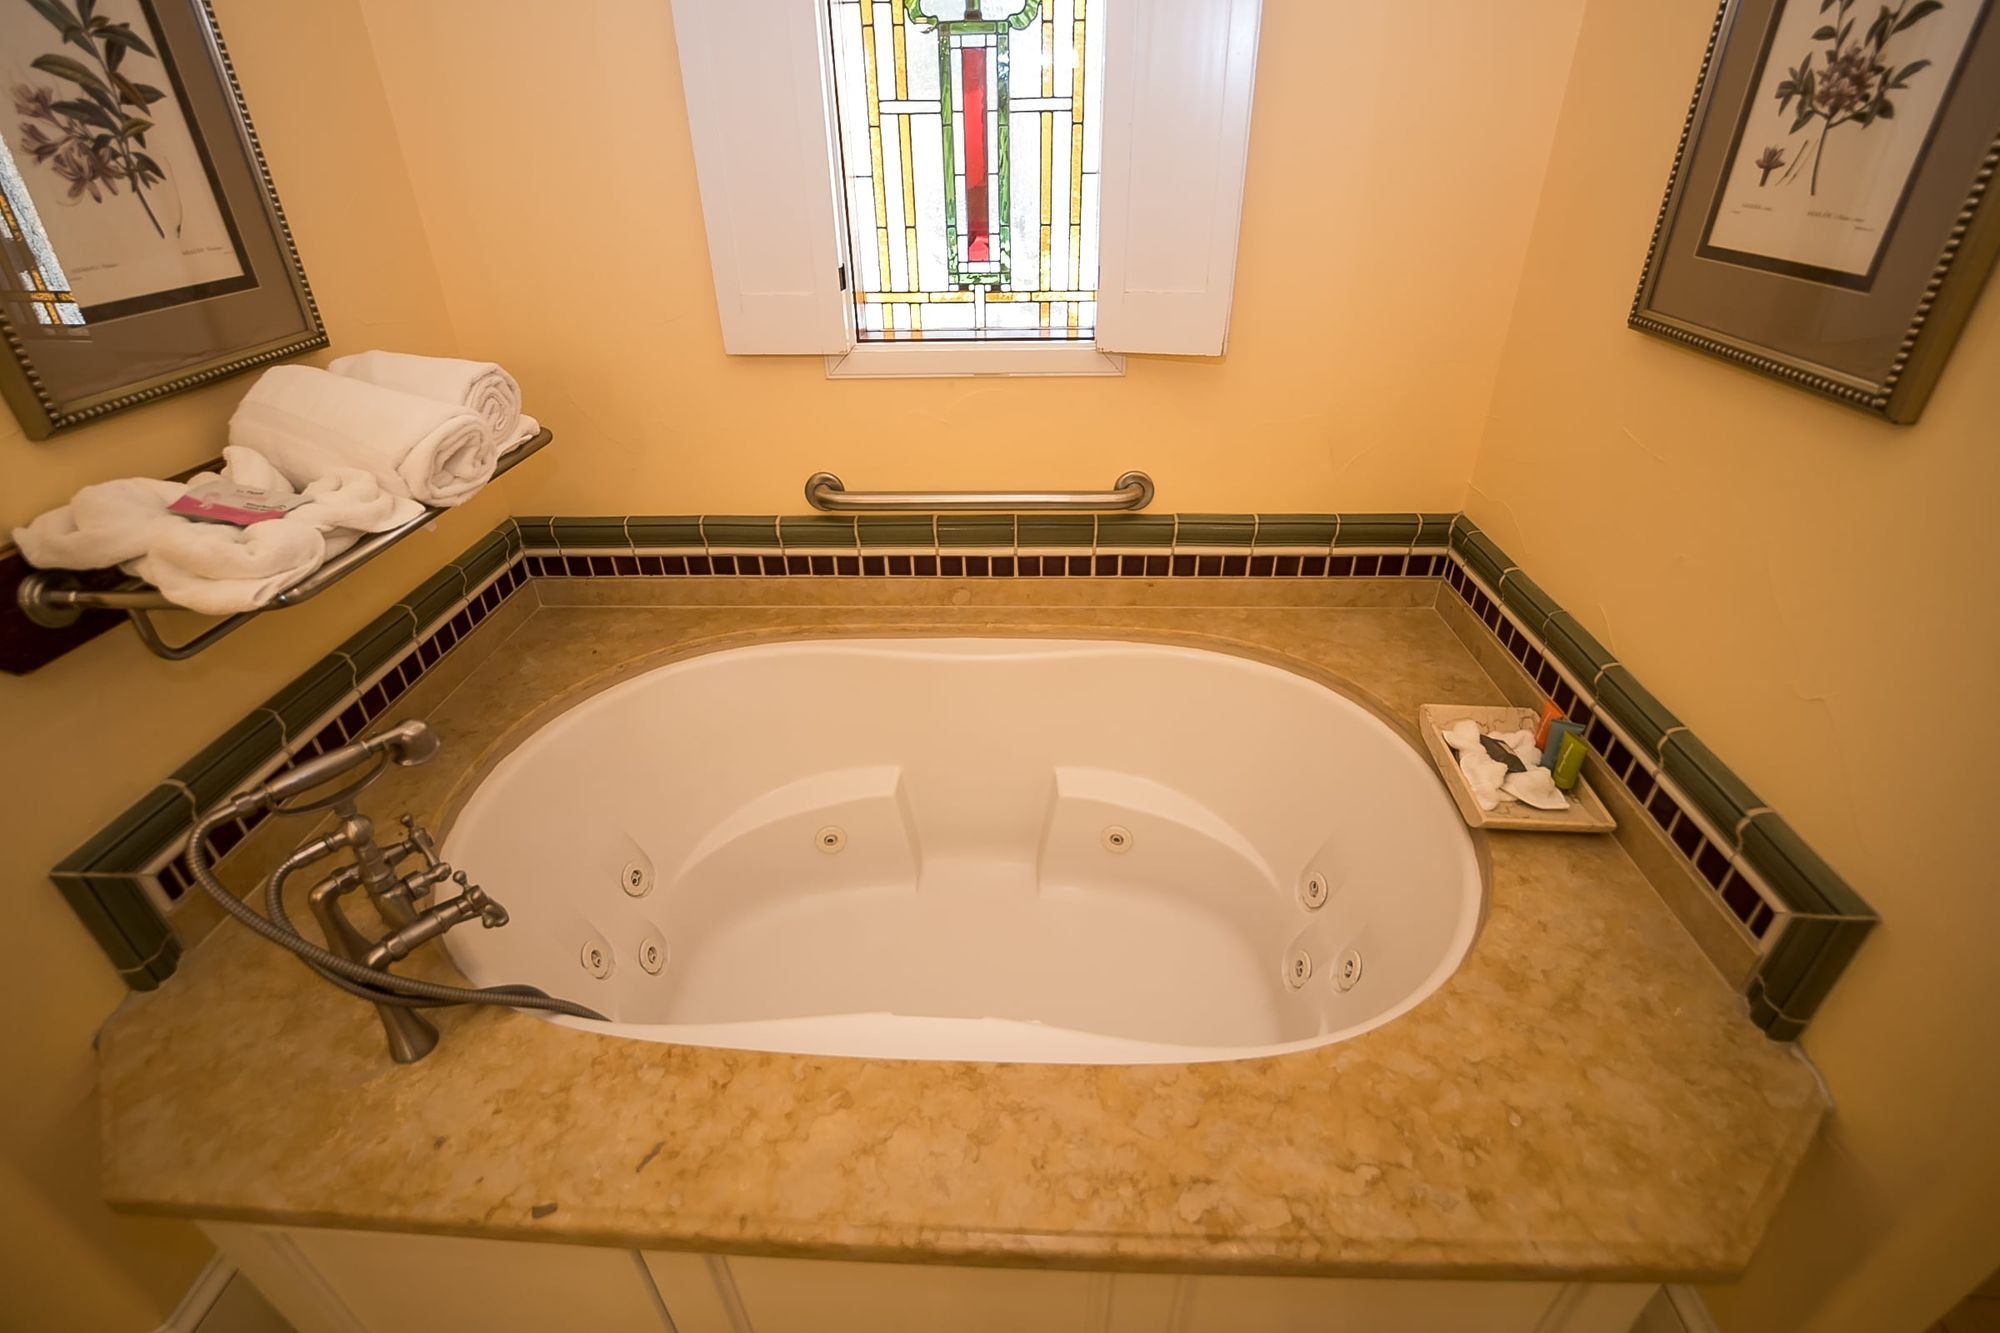 Spa bathtub with pile of towels to the left and soaps in a dish to the right